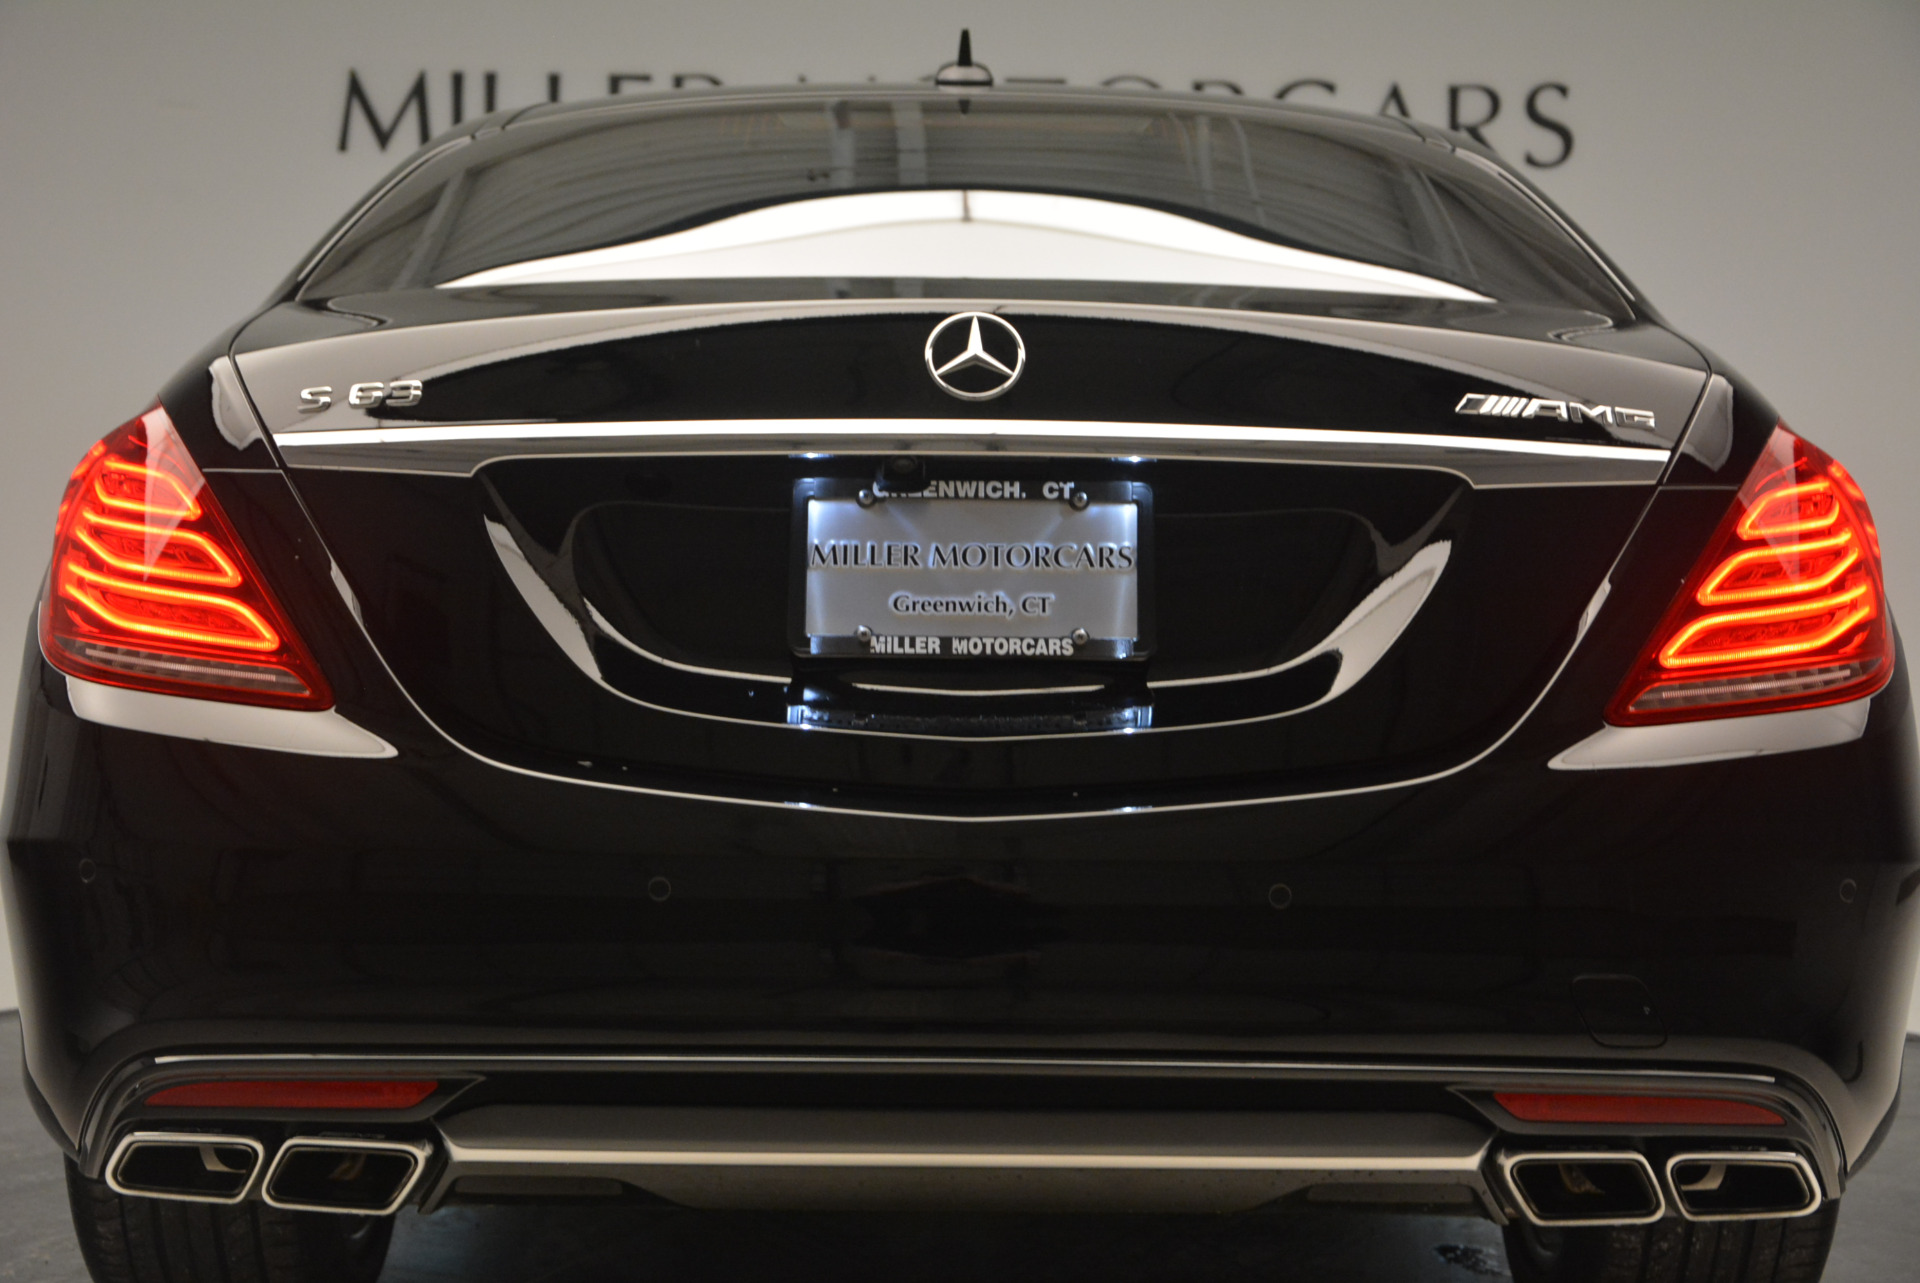 Used 2014 Mercedes Benz S-Class S 63 AMG For Sale In Greenwich, CT 912_p15